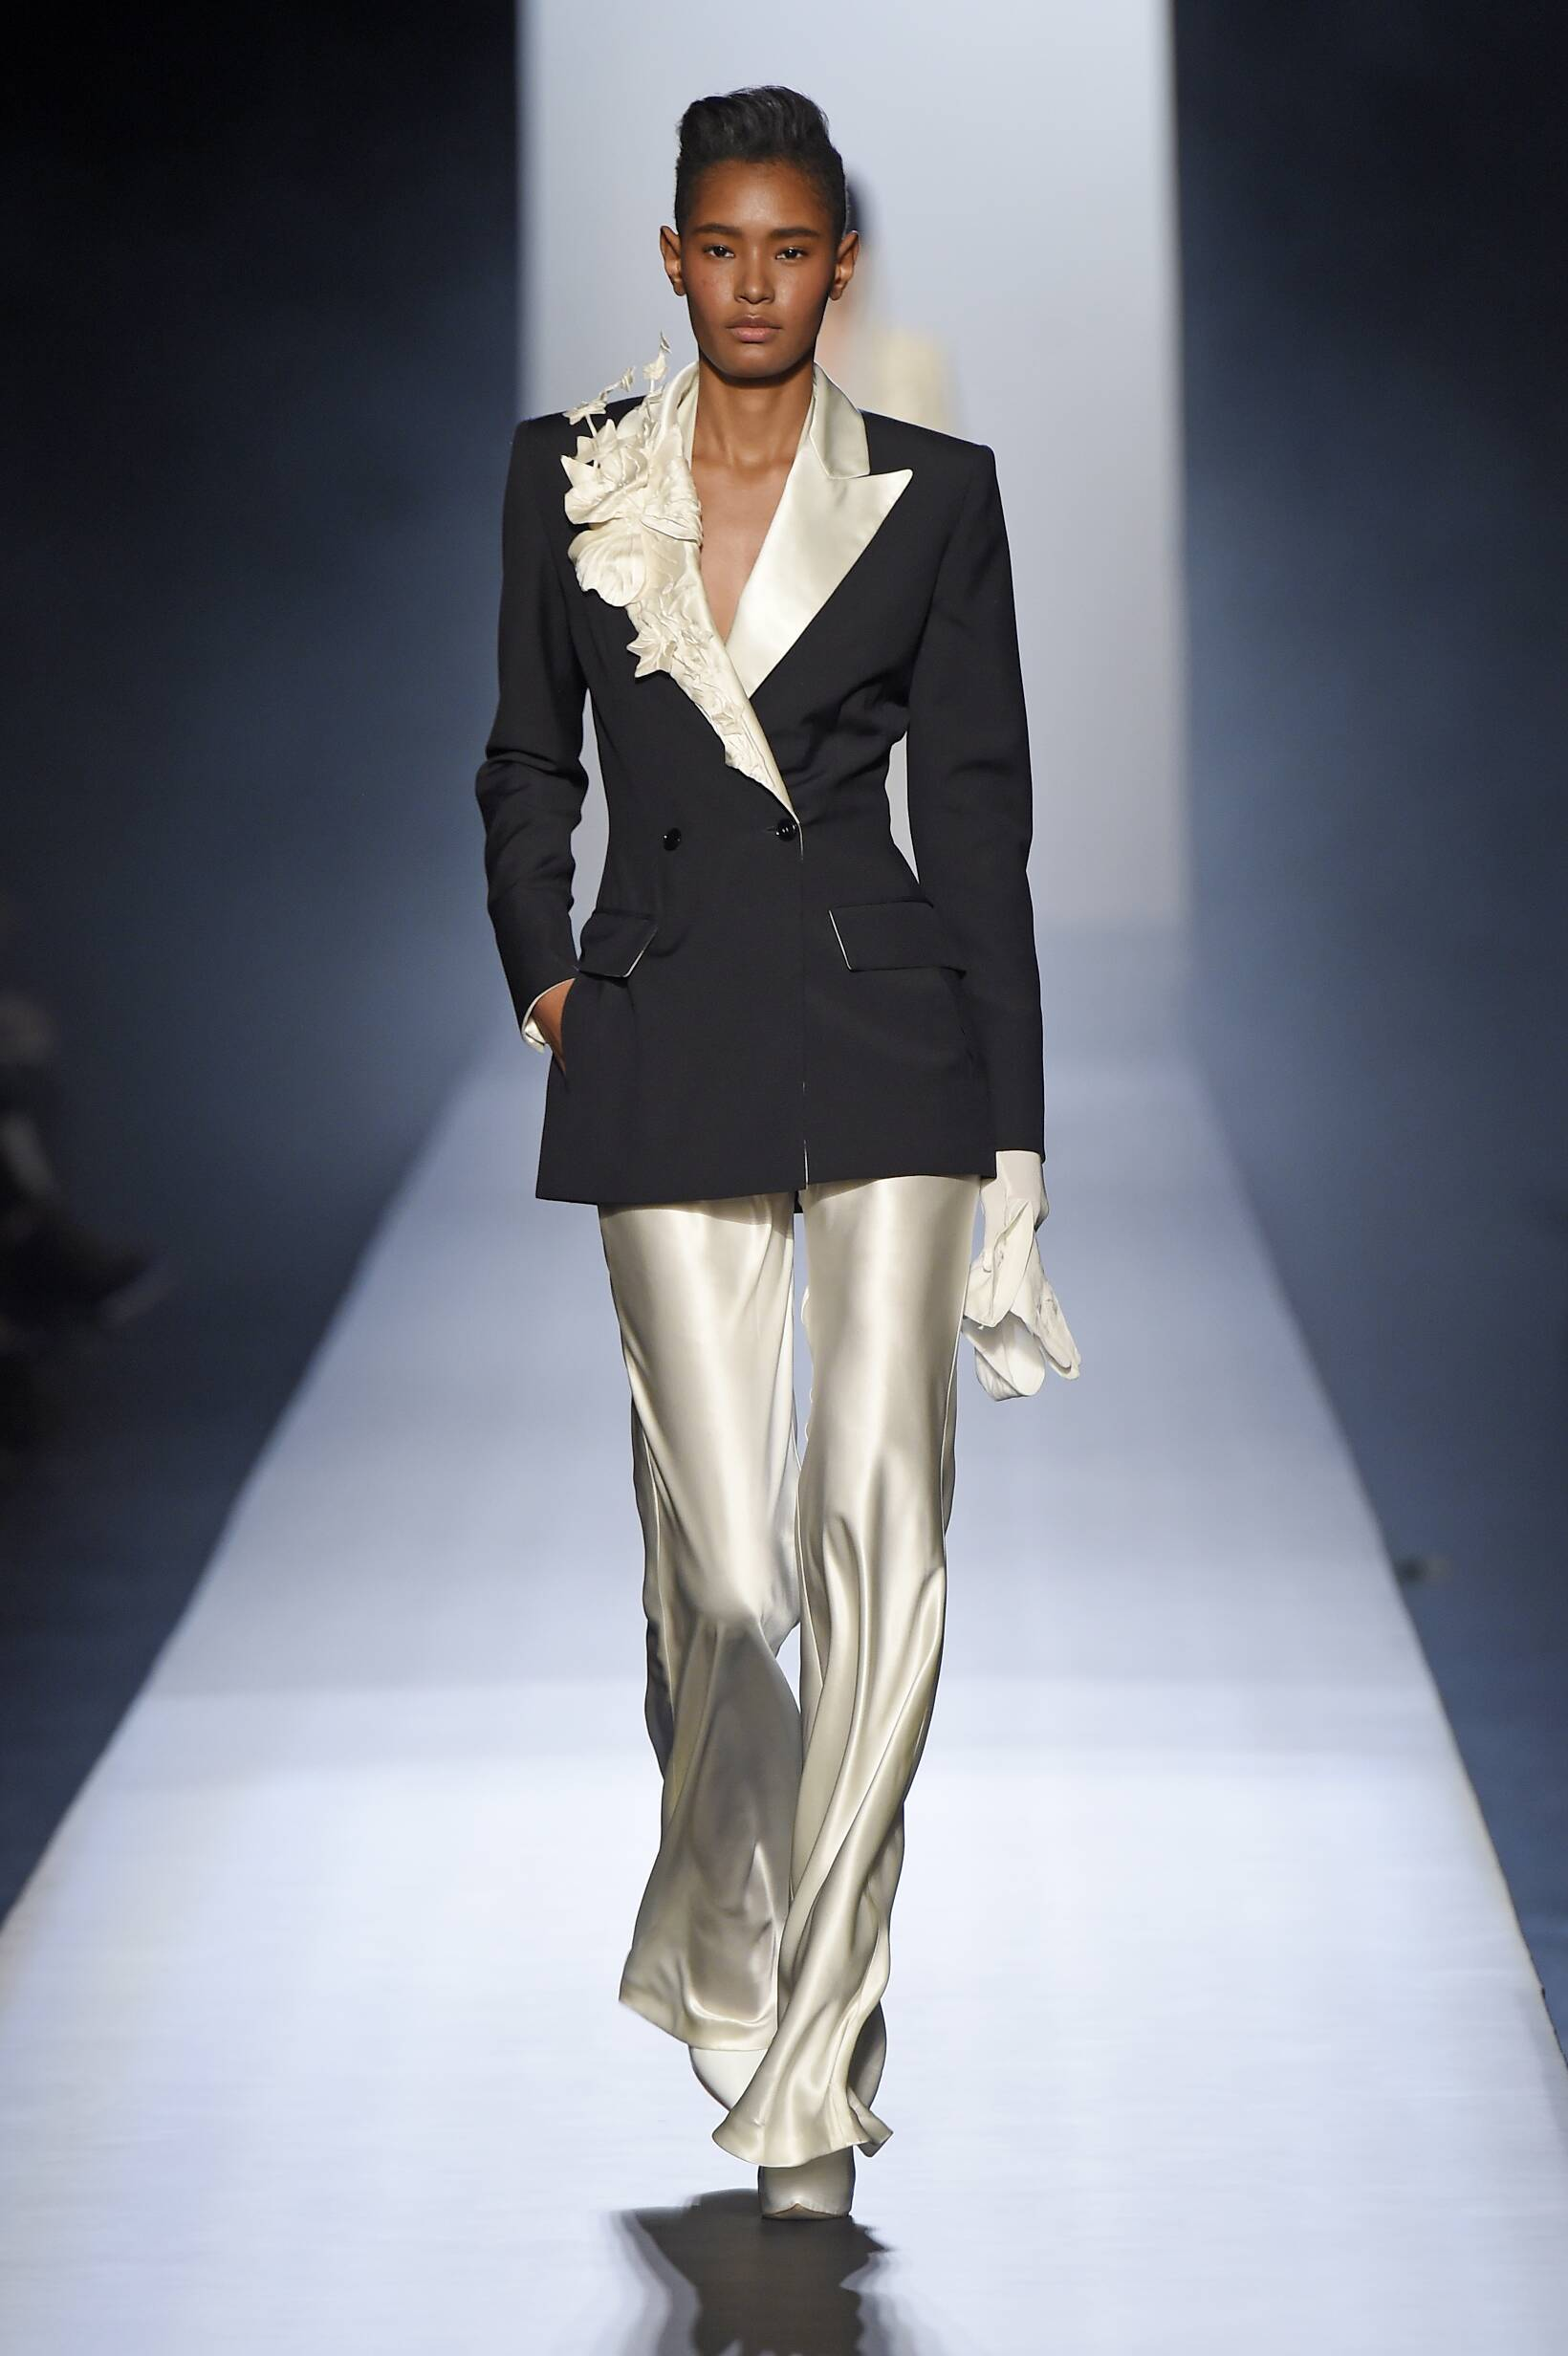 Summer 2015 Fashion Show Jean Paul Gaultier Haute Couture Collection